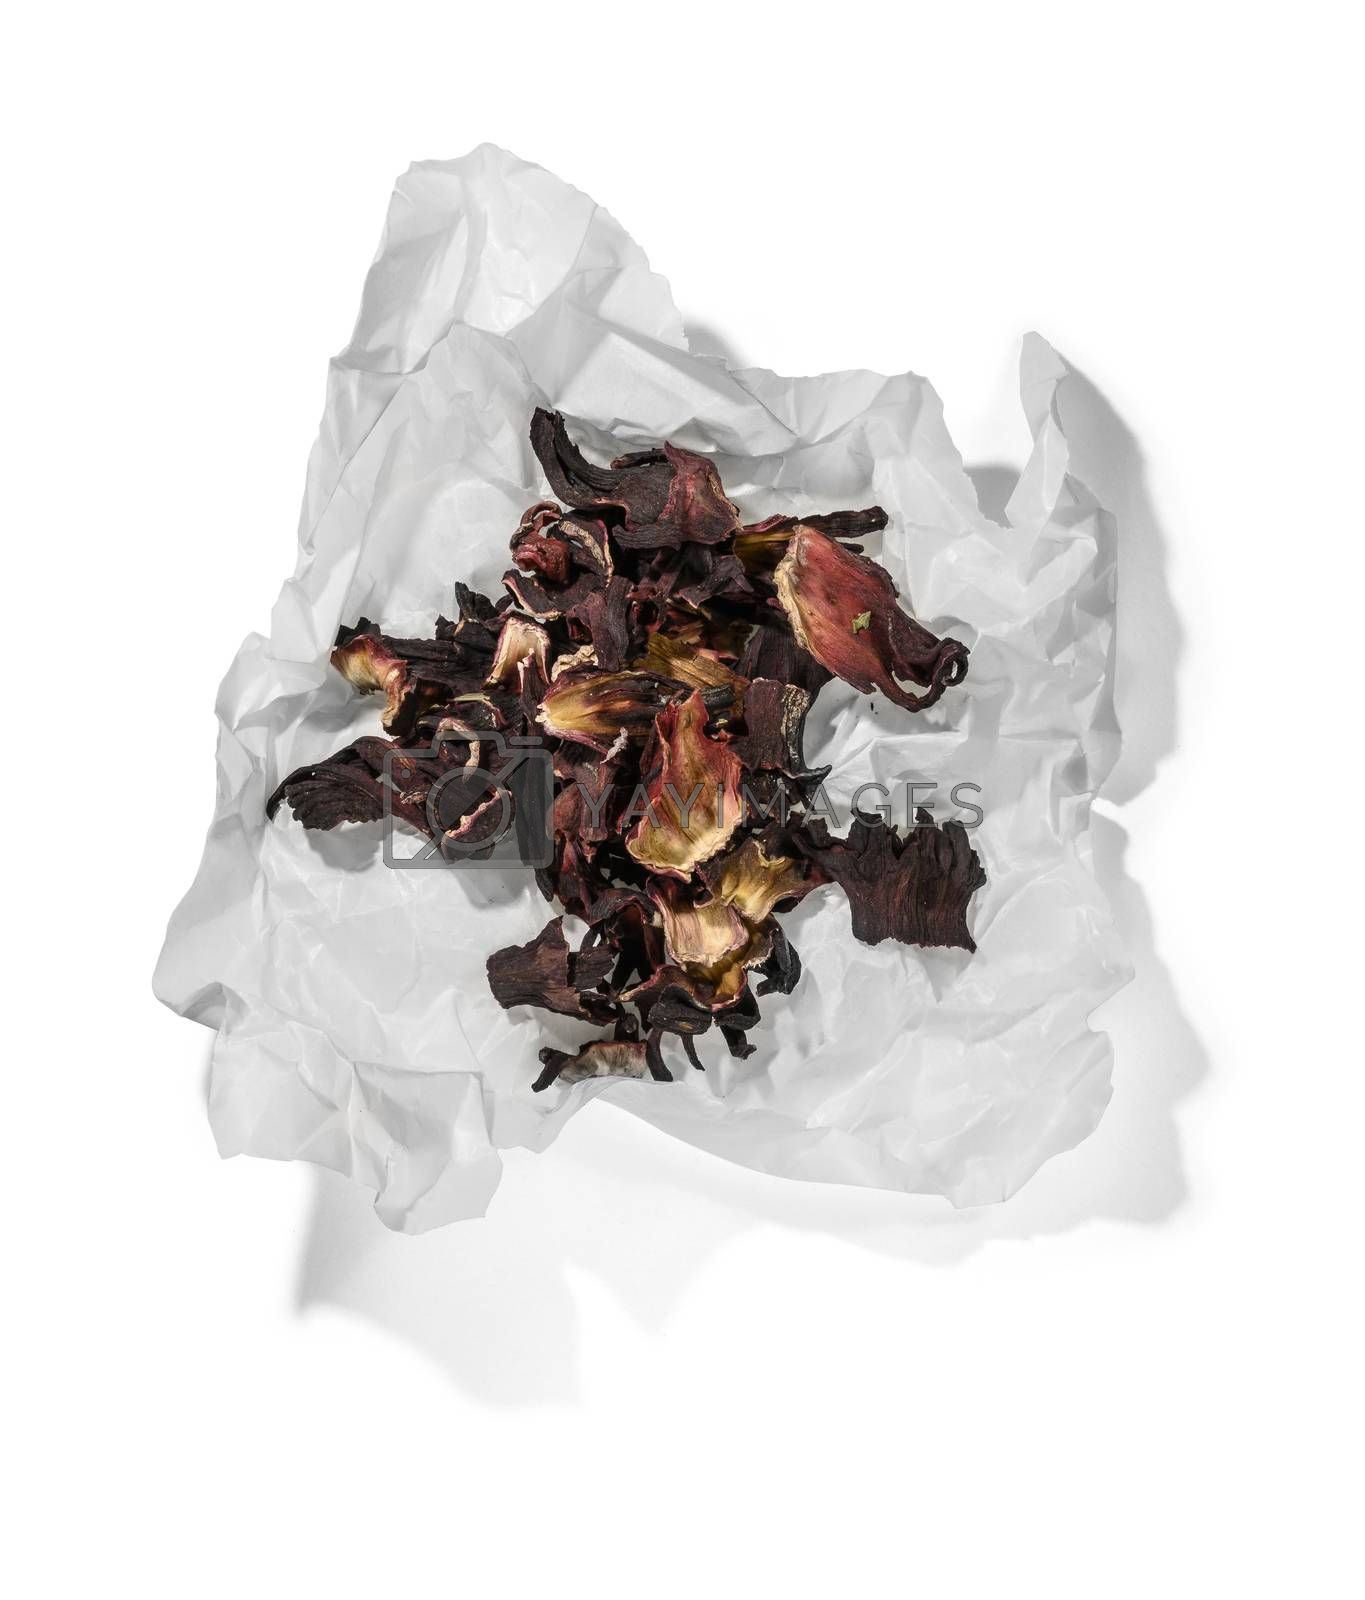 Hibiscus tea for making a drink on a white background.